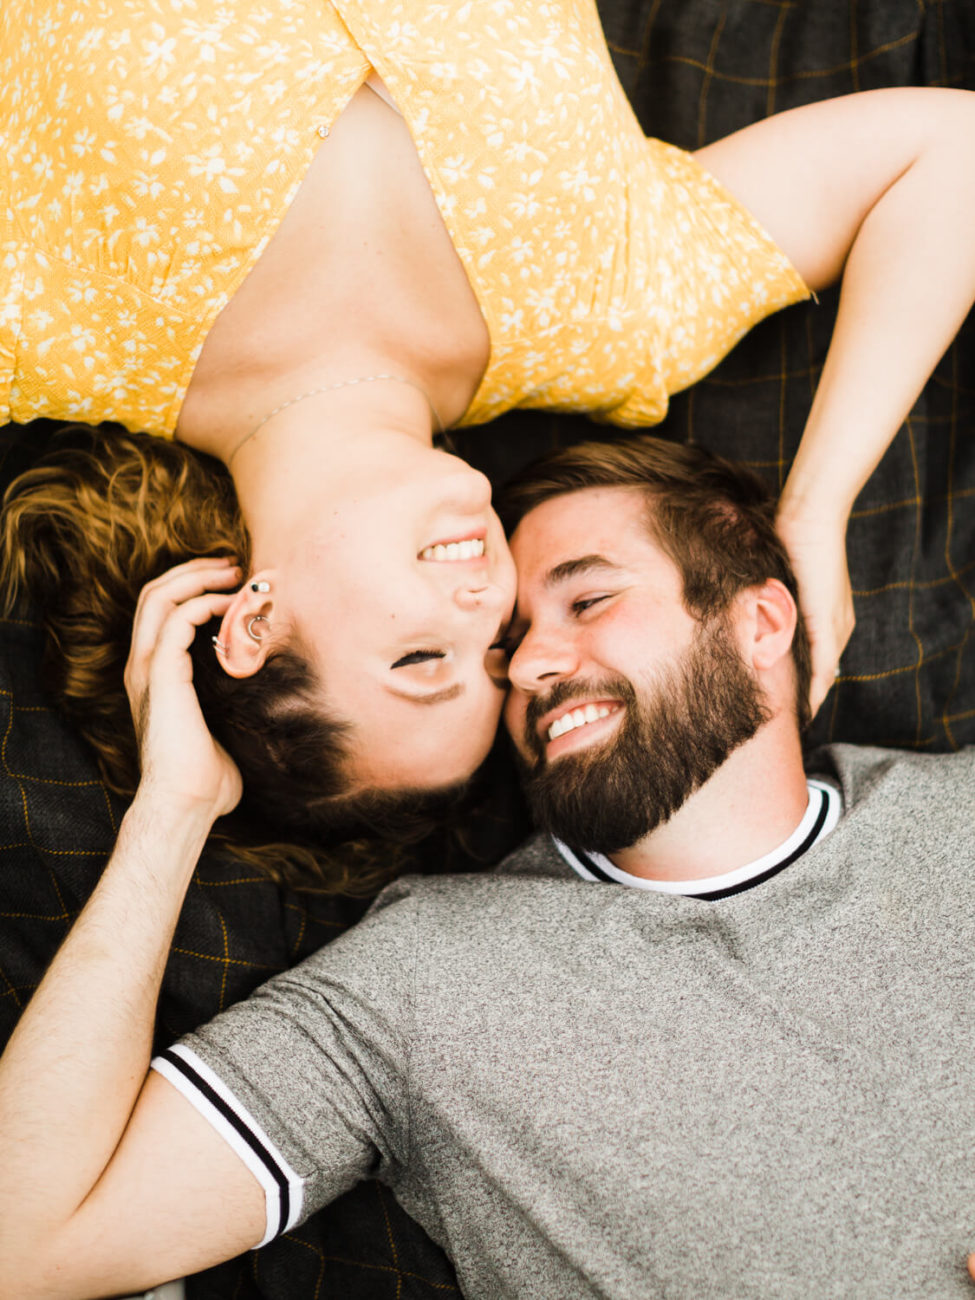 photo of a couple from above embracing